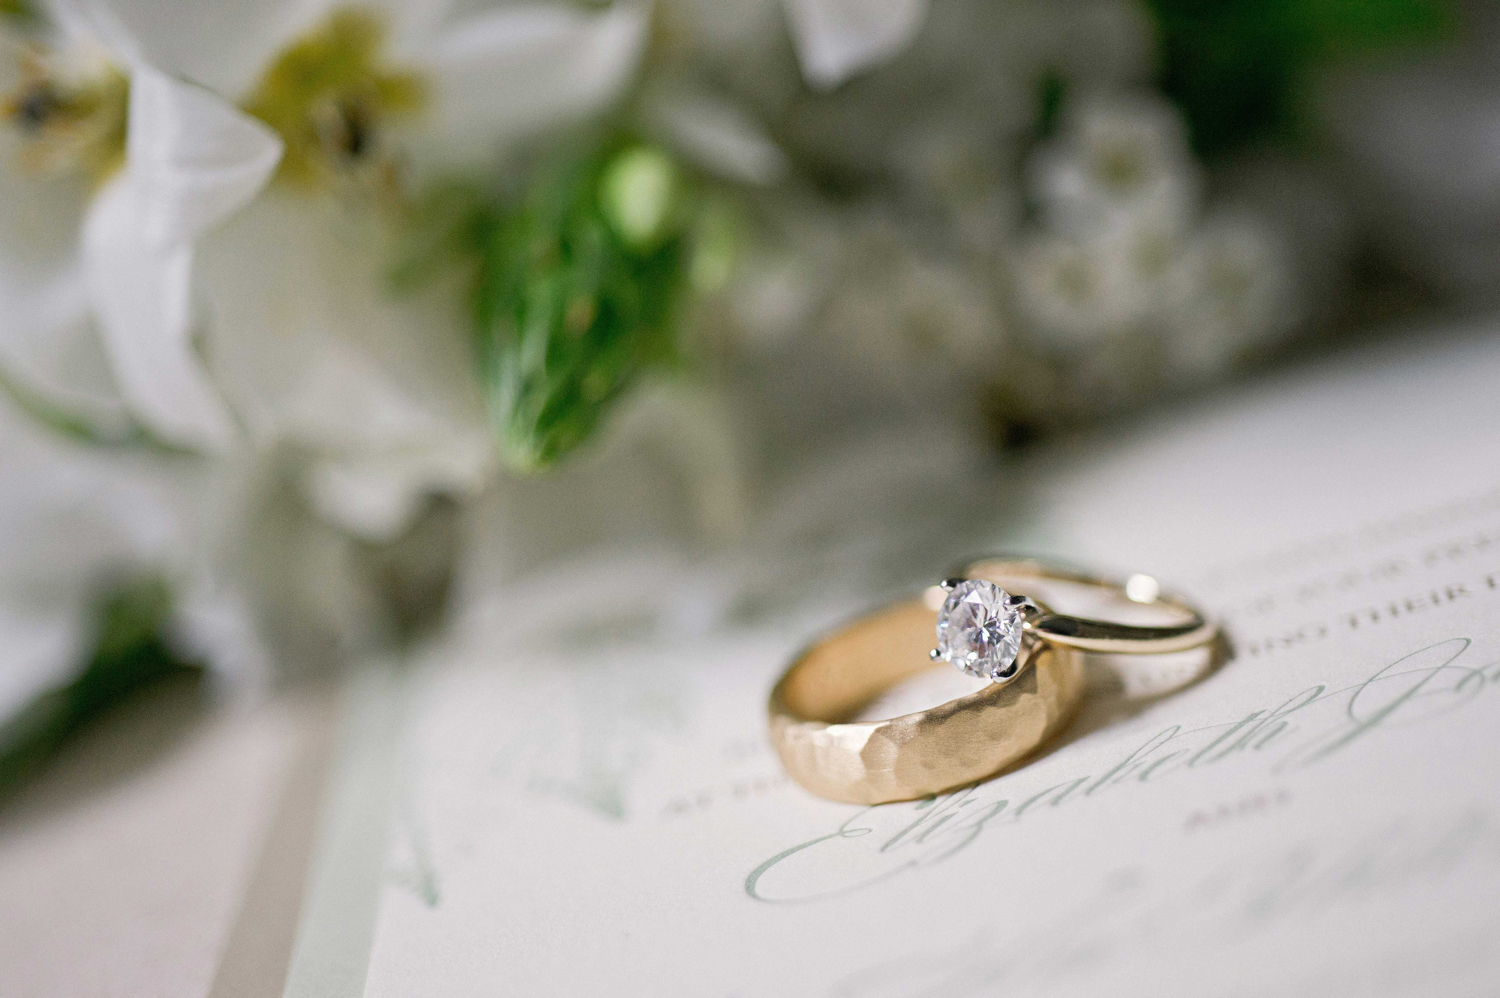 laura prepon engagement ring inspiration, classic solitaire diamond on yellow gold band